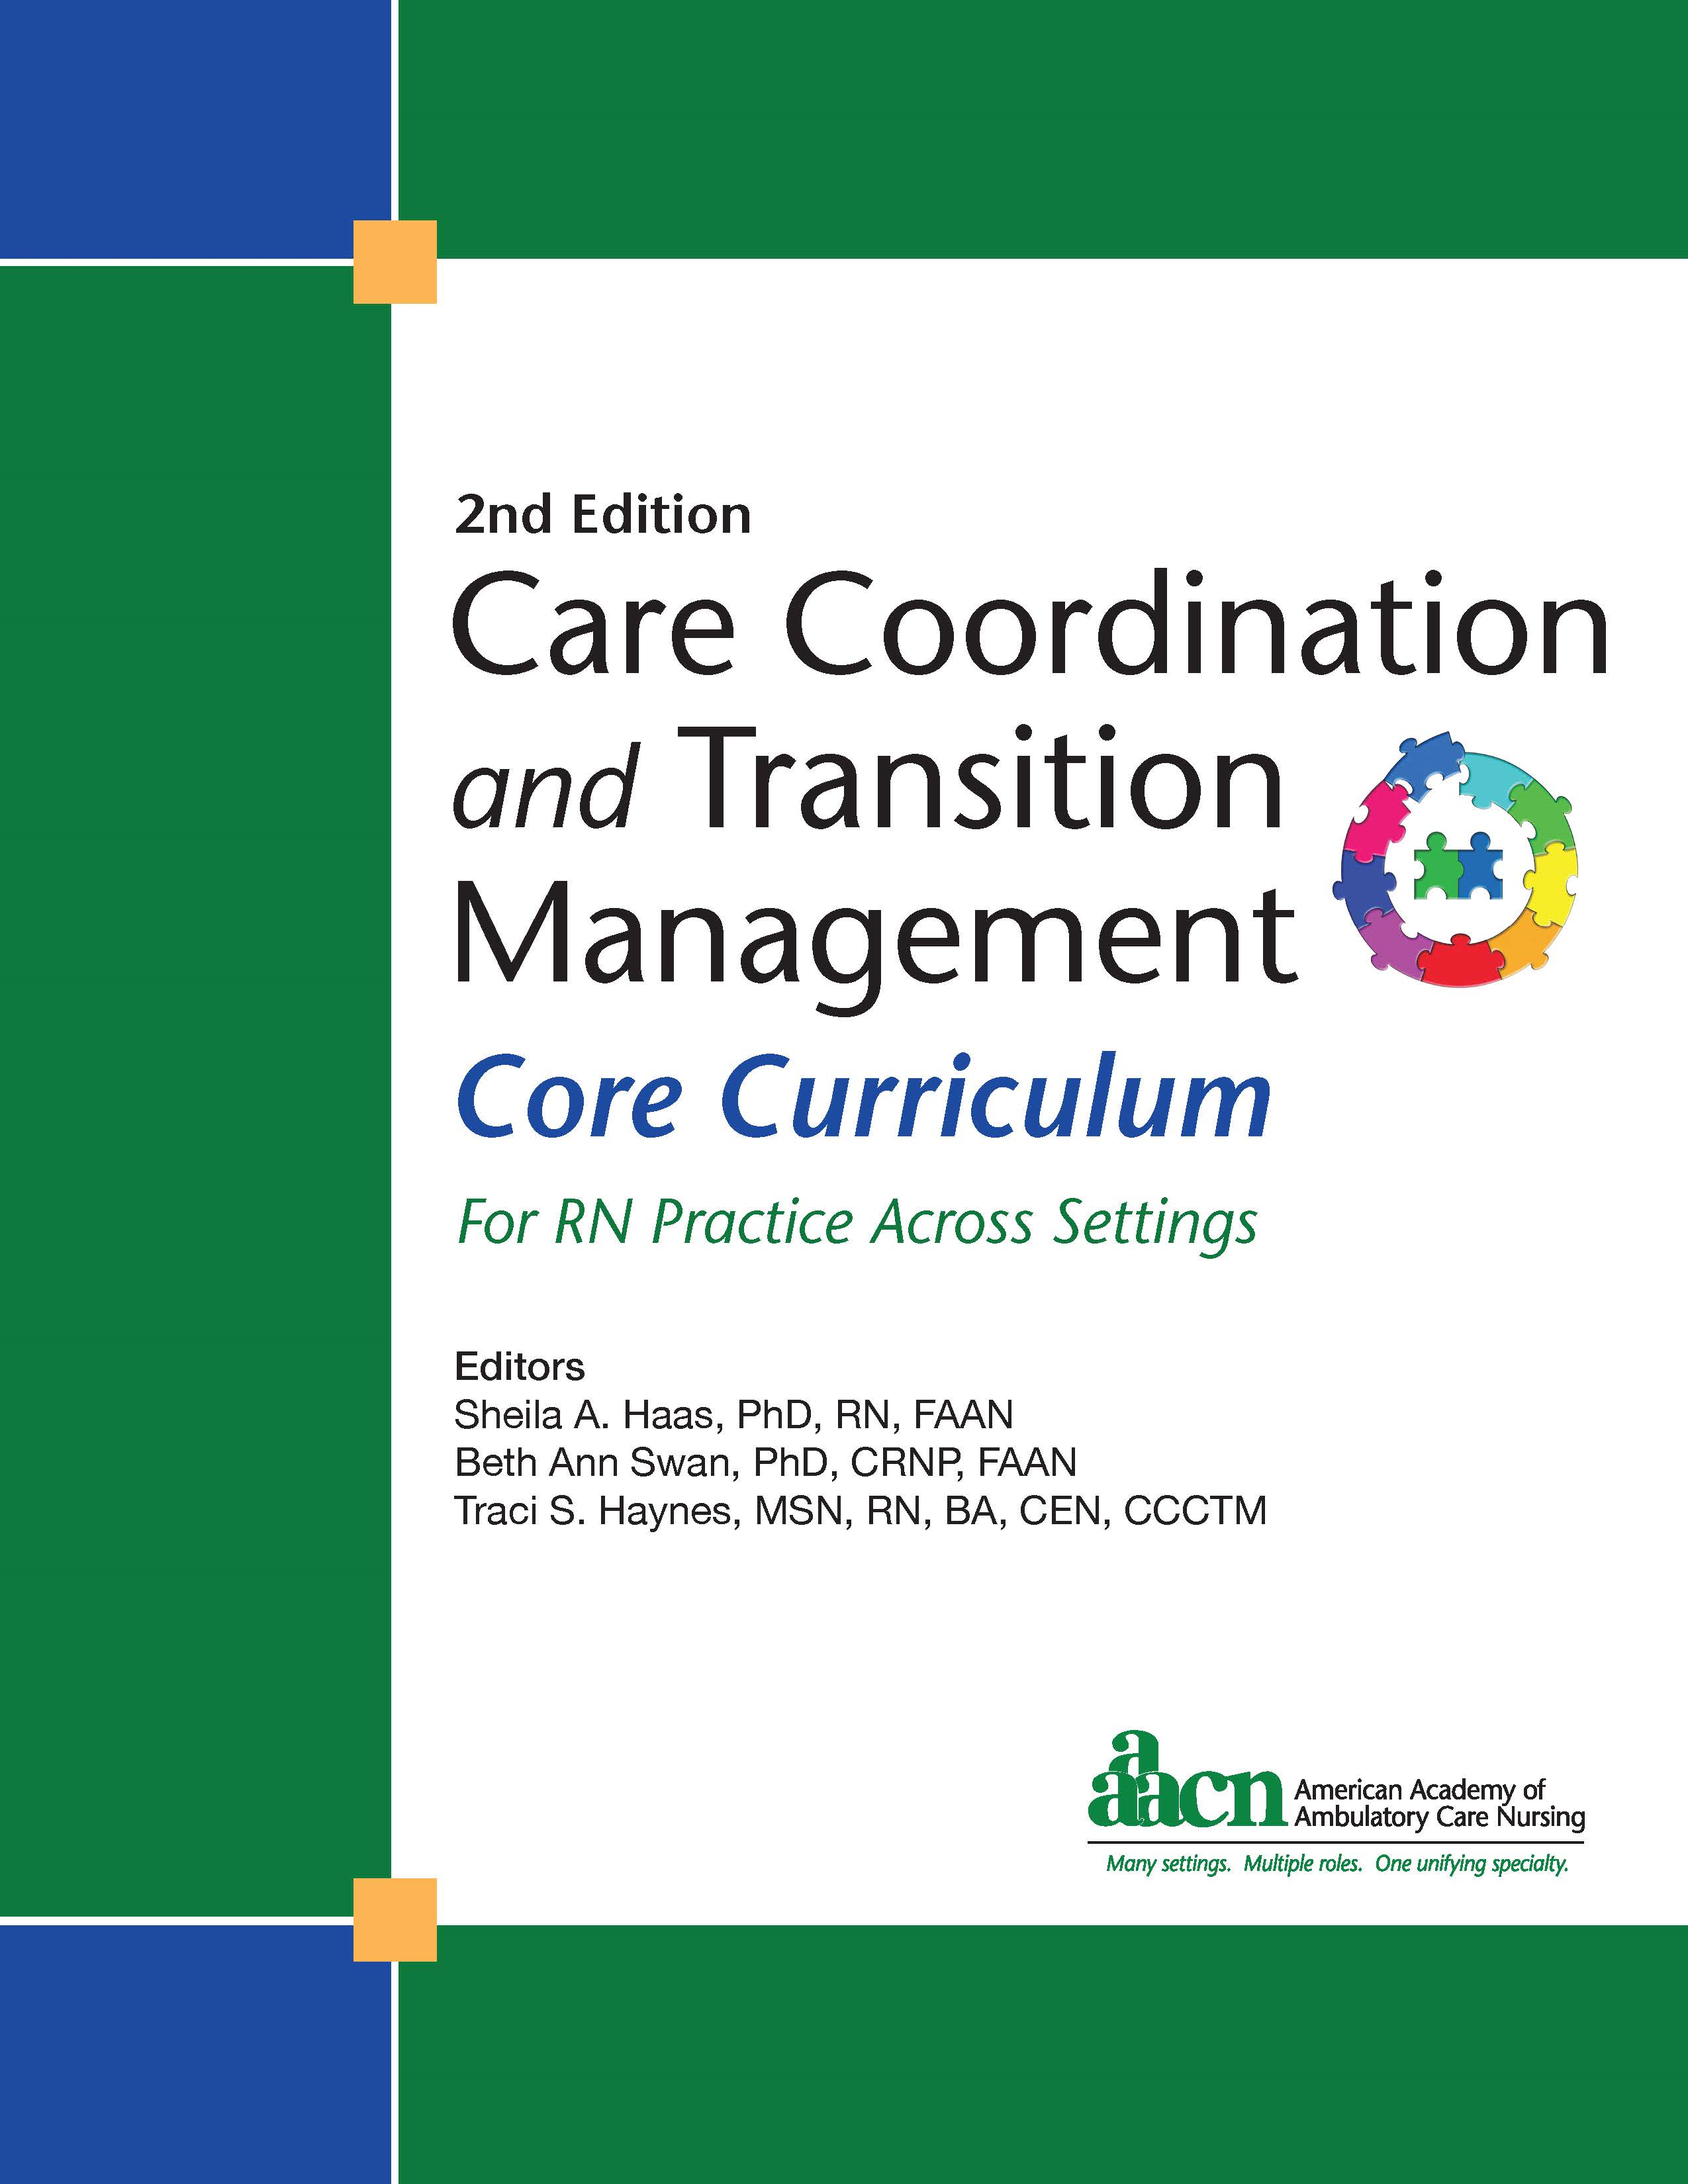 Care Coordination and Transition Management (CCTM) Core Curriculum, 2nd Edition, 2019